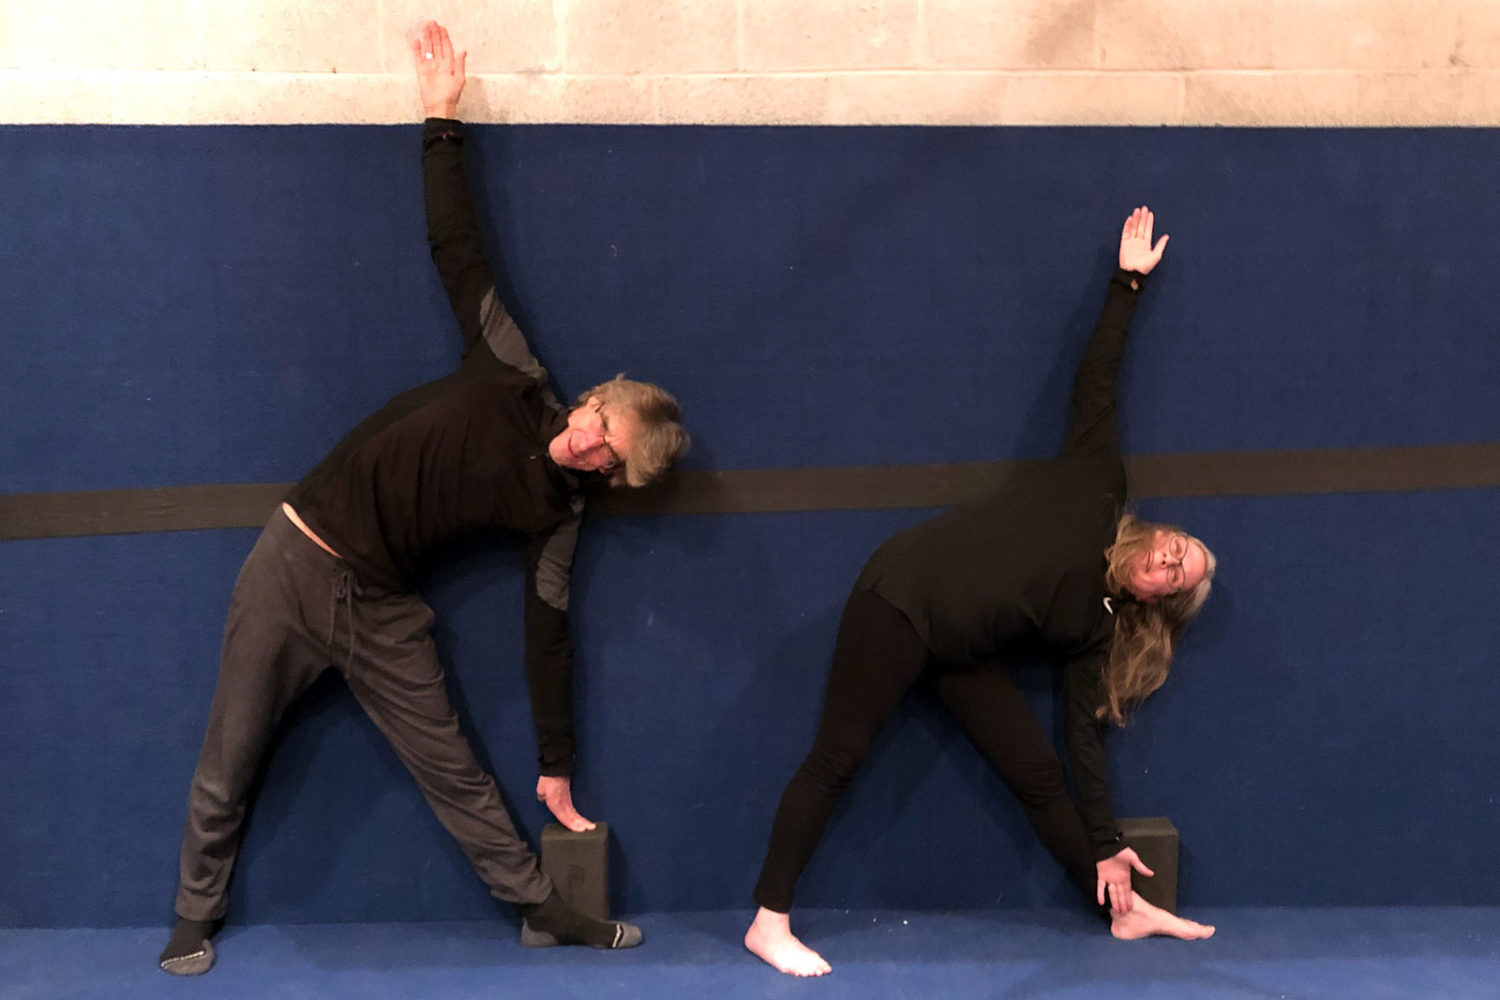 Paul and Peggi doing triangle pose against the wall in yoga class